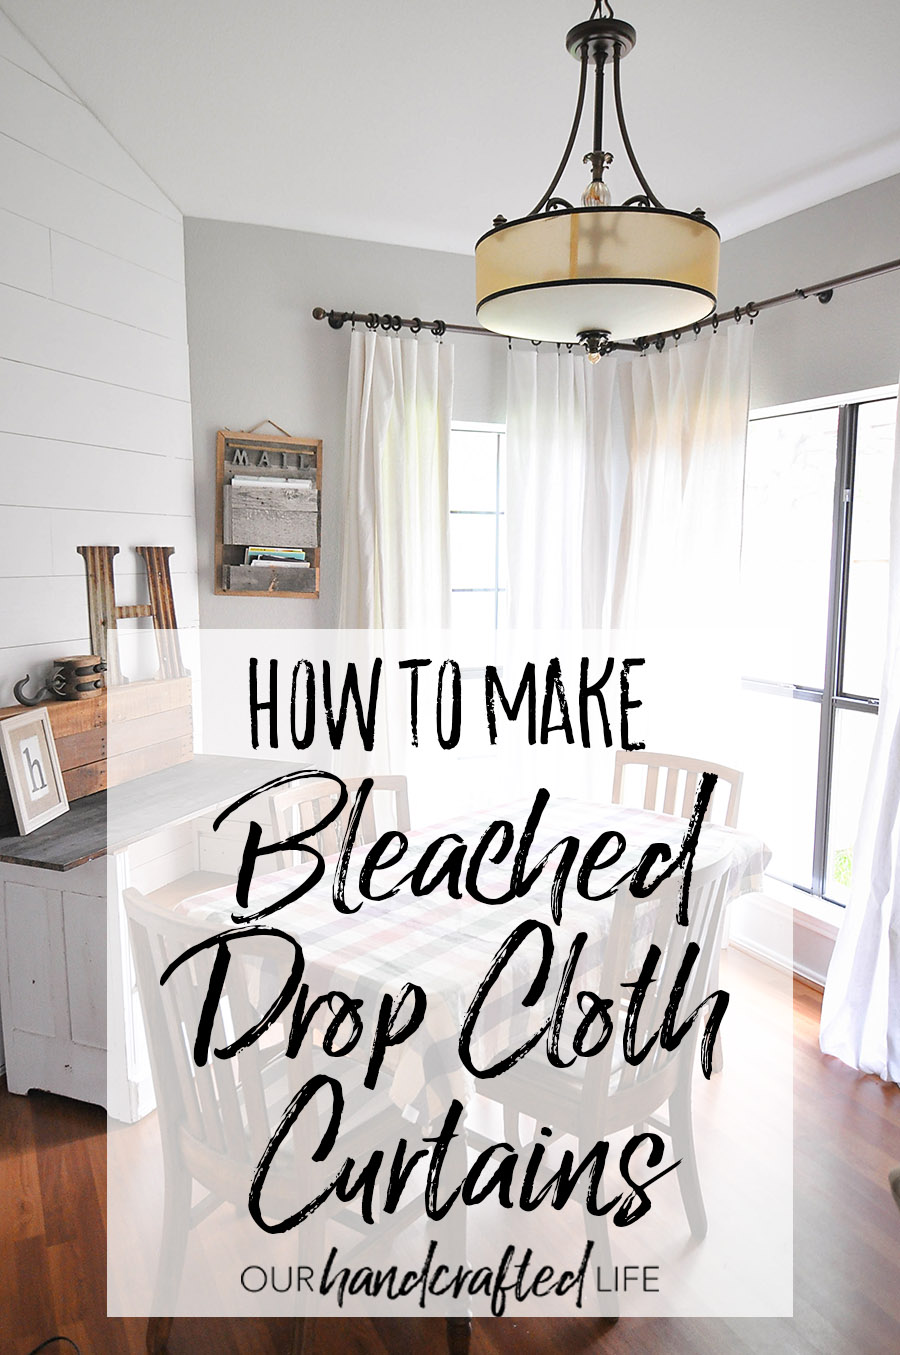 Bleached Drop Cloth Curtains - Our Handcrafted Life Tall